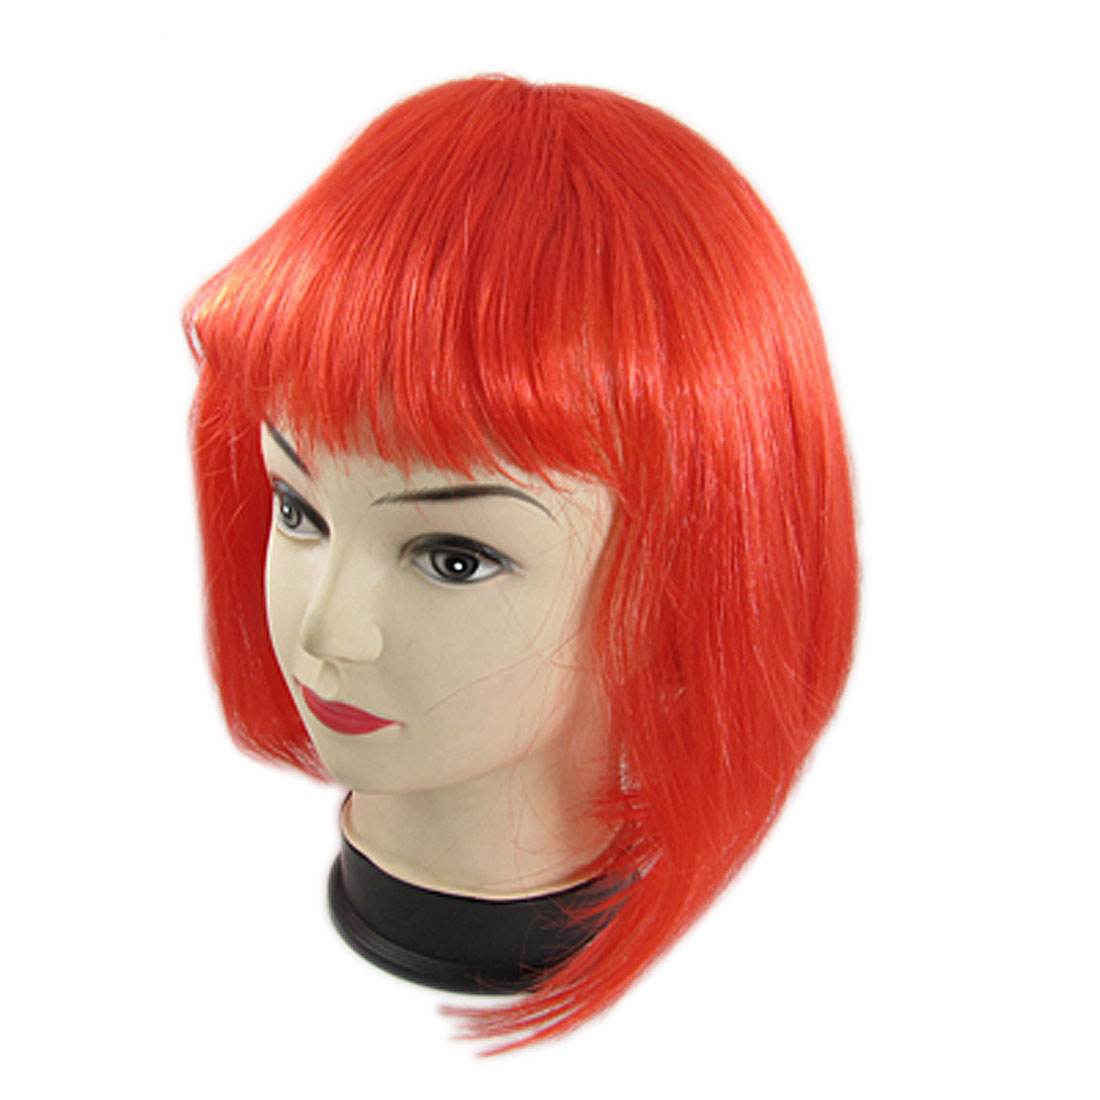 Cosplay Party Red Short Bob Style Straight Hair Wig w Bangs